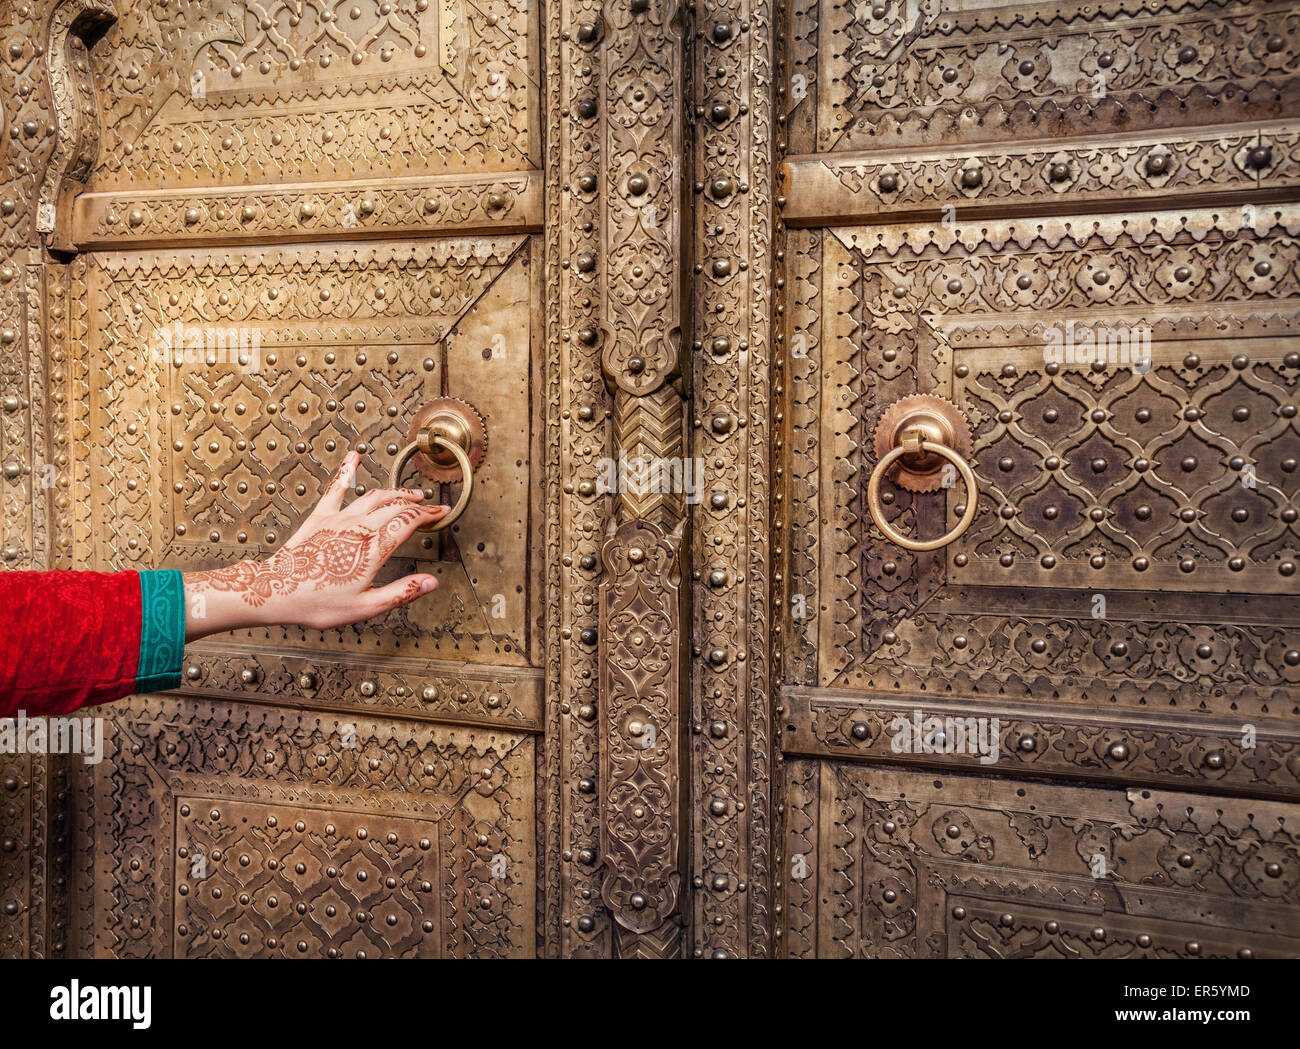 Woman hand with henna painting opening golden door in City Palace of Jaipur, Rajasthan, India - Stock Image